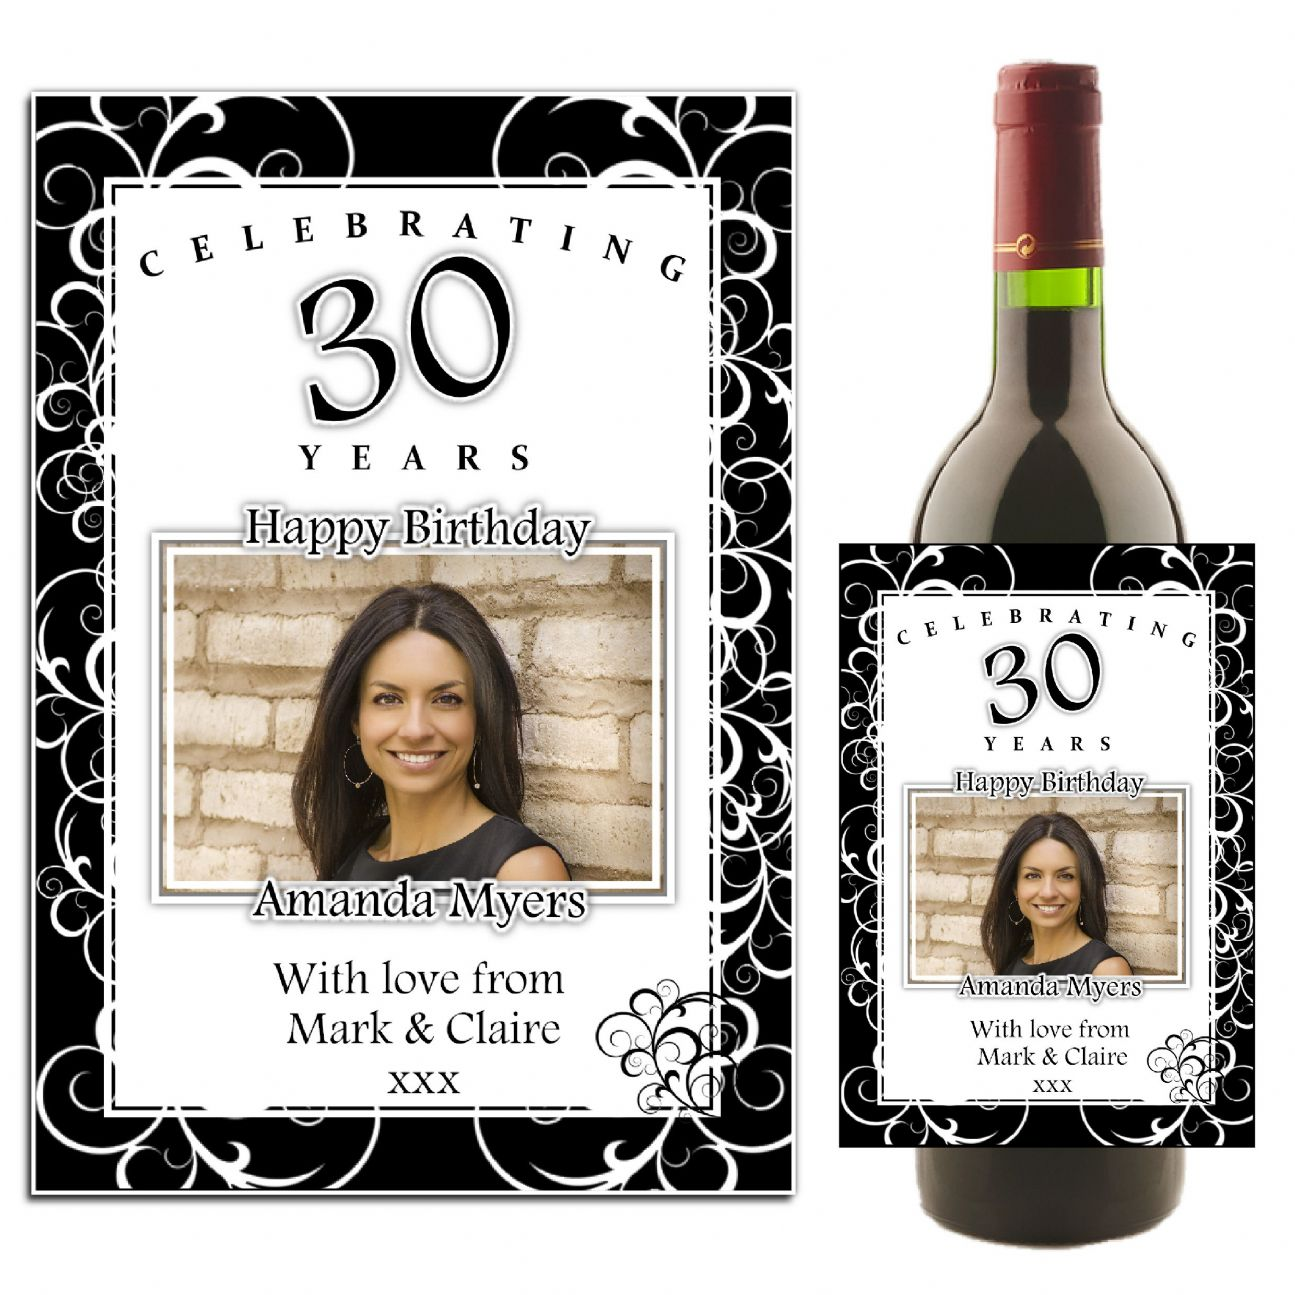 personalized wine bottle labels for birthday ; personalised-black-white-swirls-happy-birthday-wine-champagne-bottle-photo-label-n35-12586-p